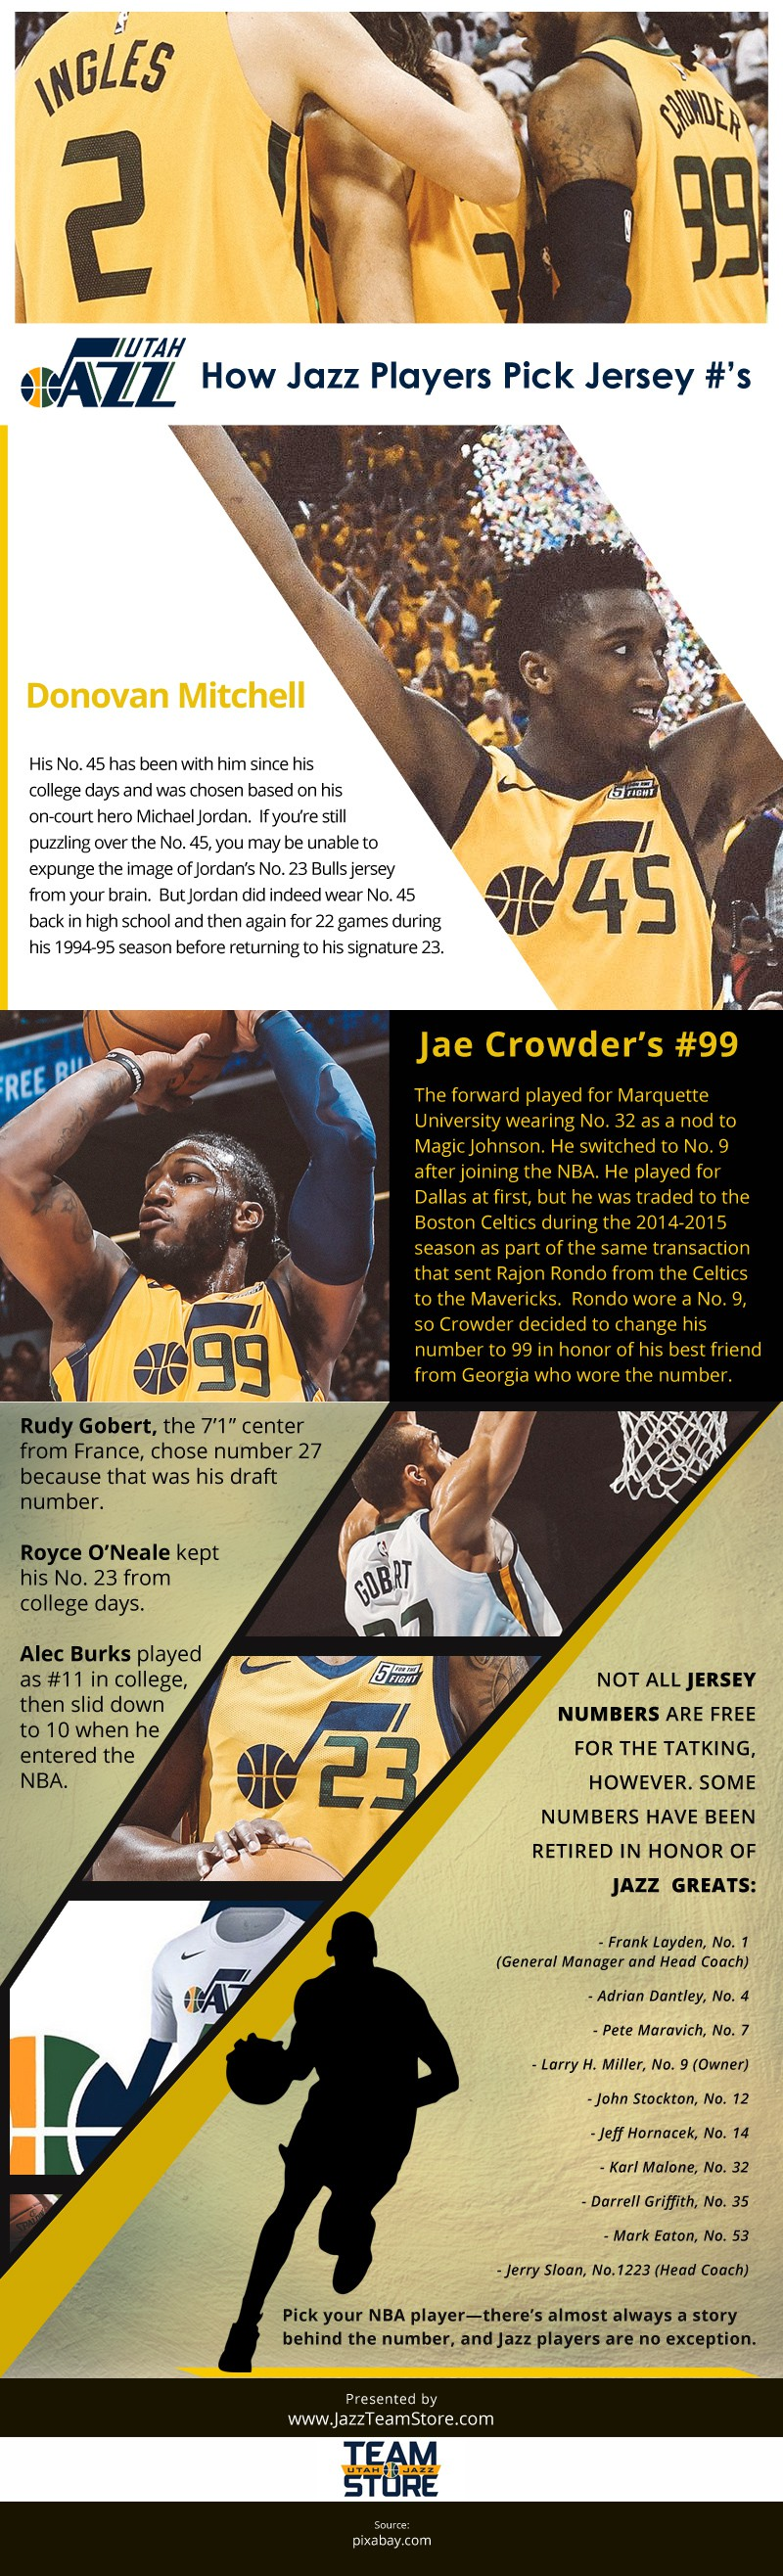 How-Jazz-Players-Pick-Their-Jersey-Numbers Infographic